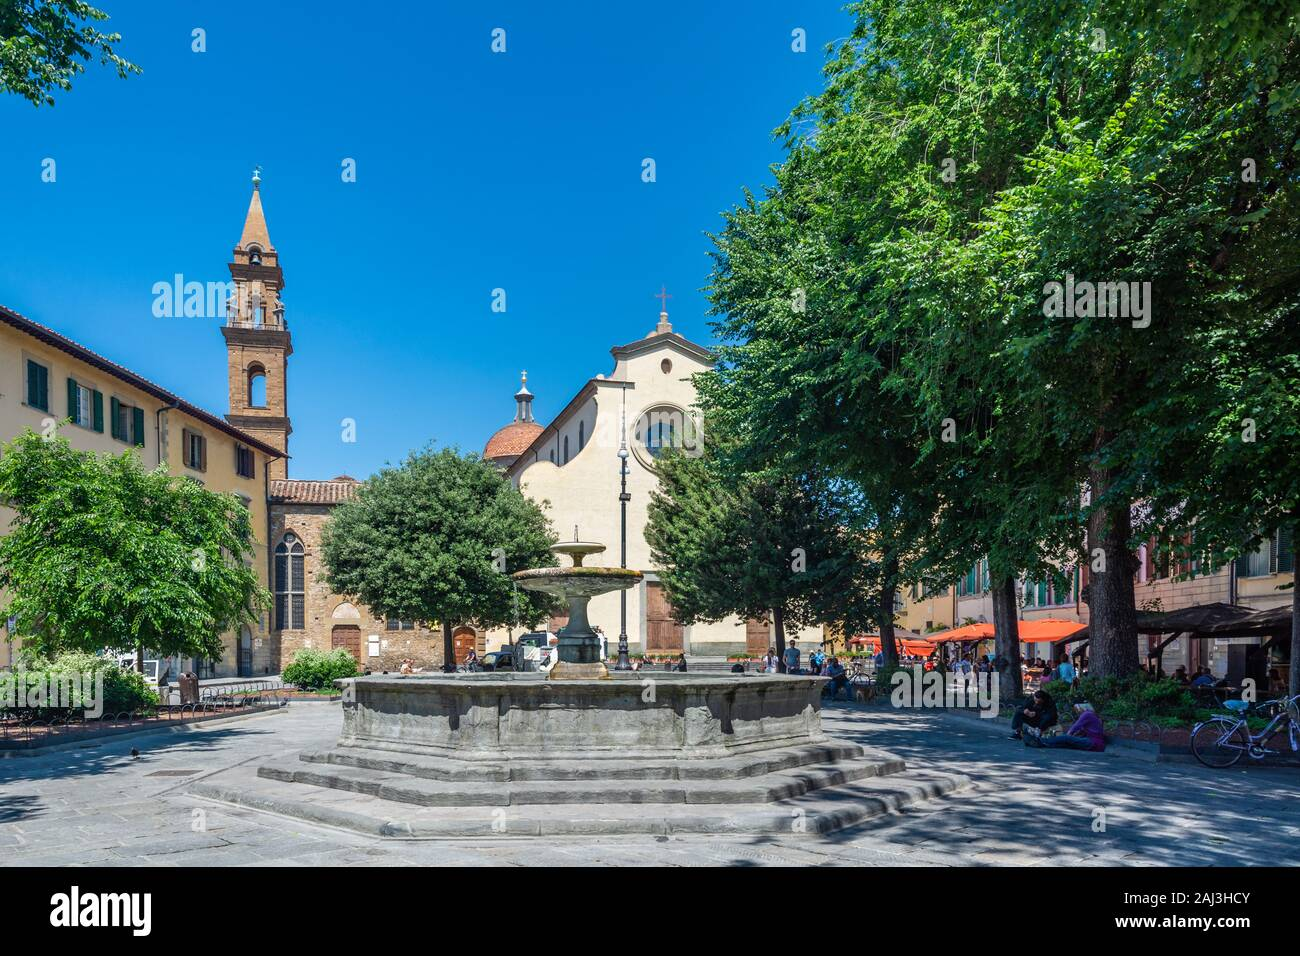 Florence, Italy - June 5, 2019 : The Basilica di Santo Spirito (Basilica of the Holy Spirit) is a church facing the square with the same name. The int Stock Photo